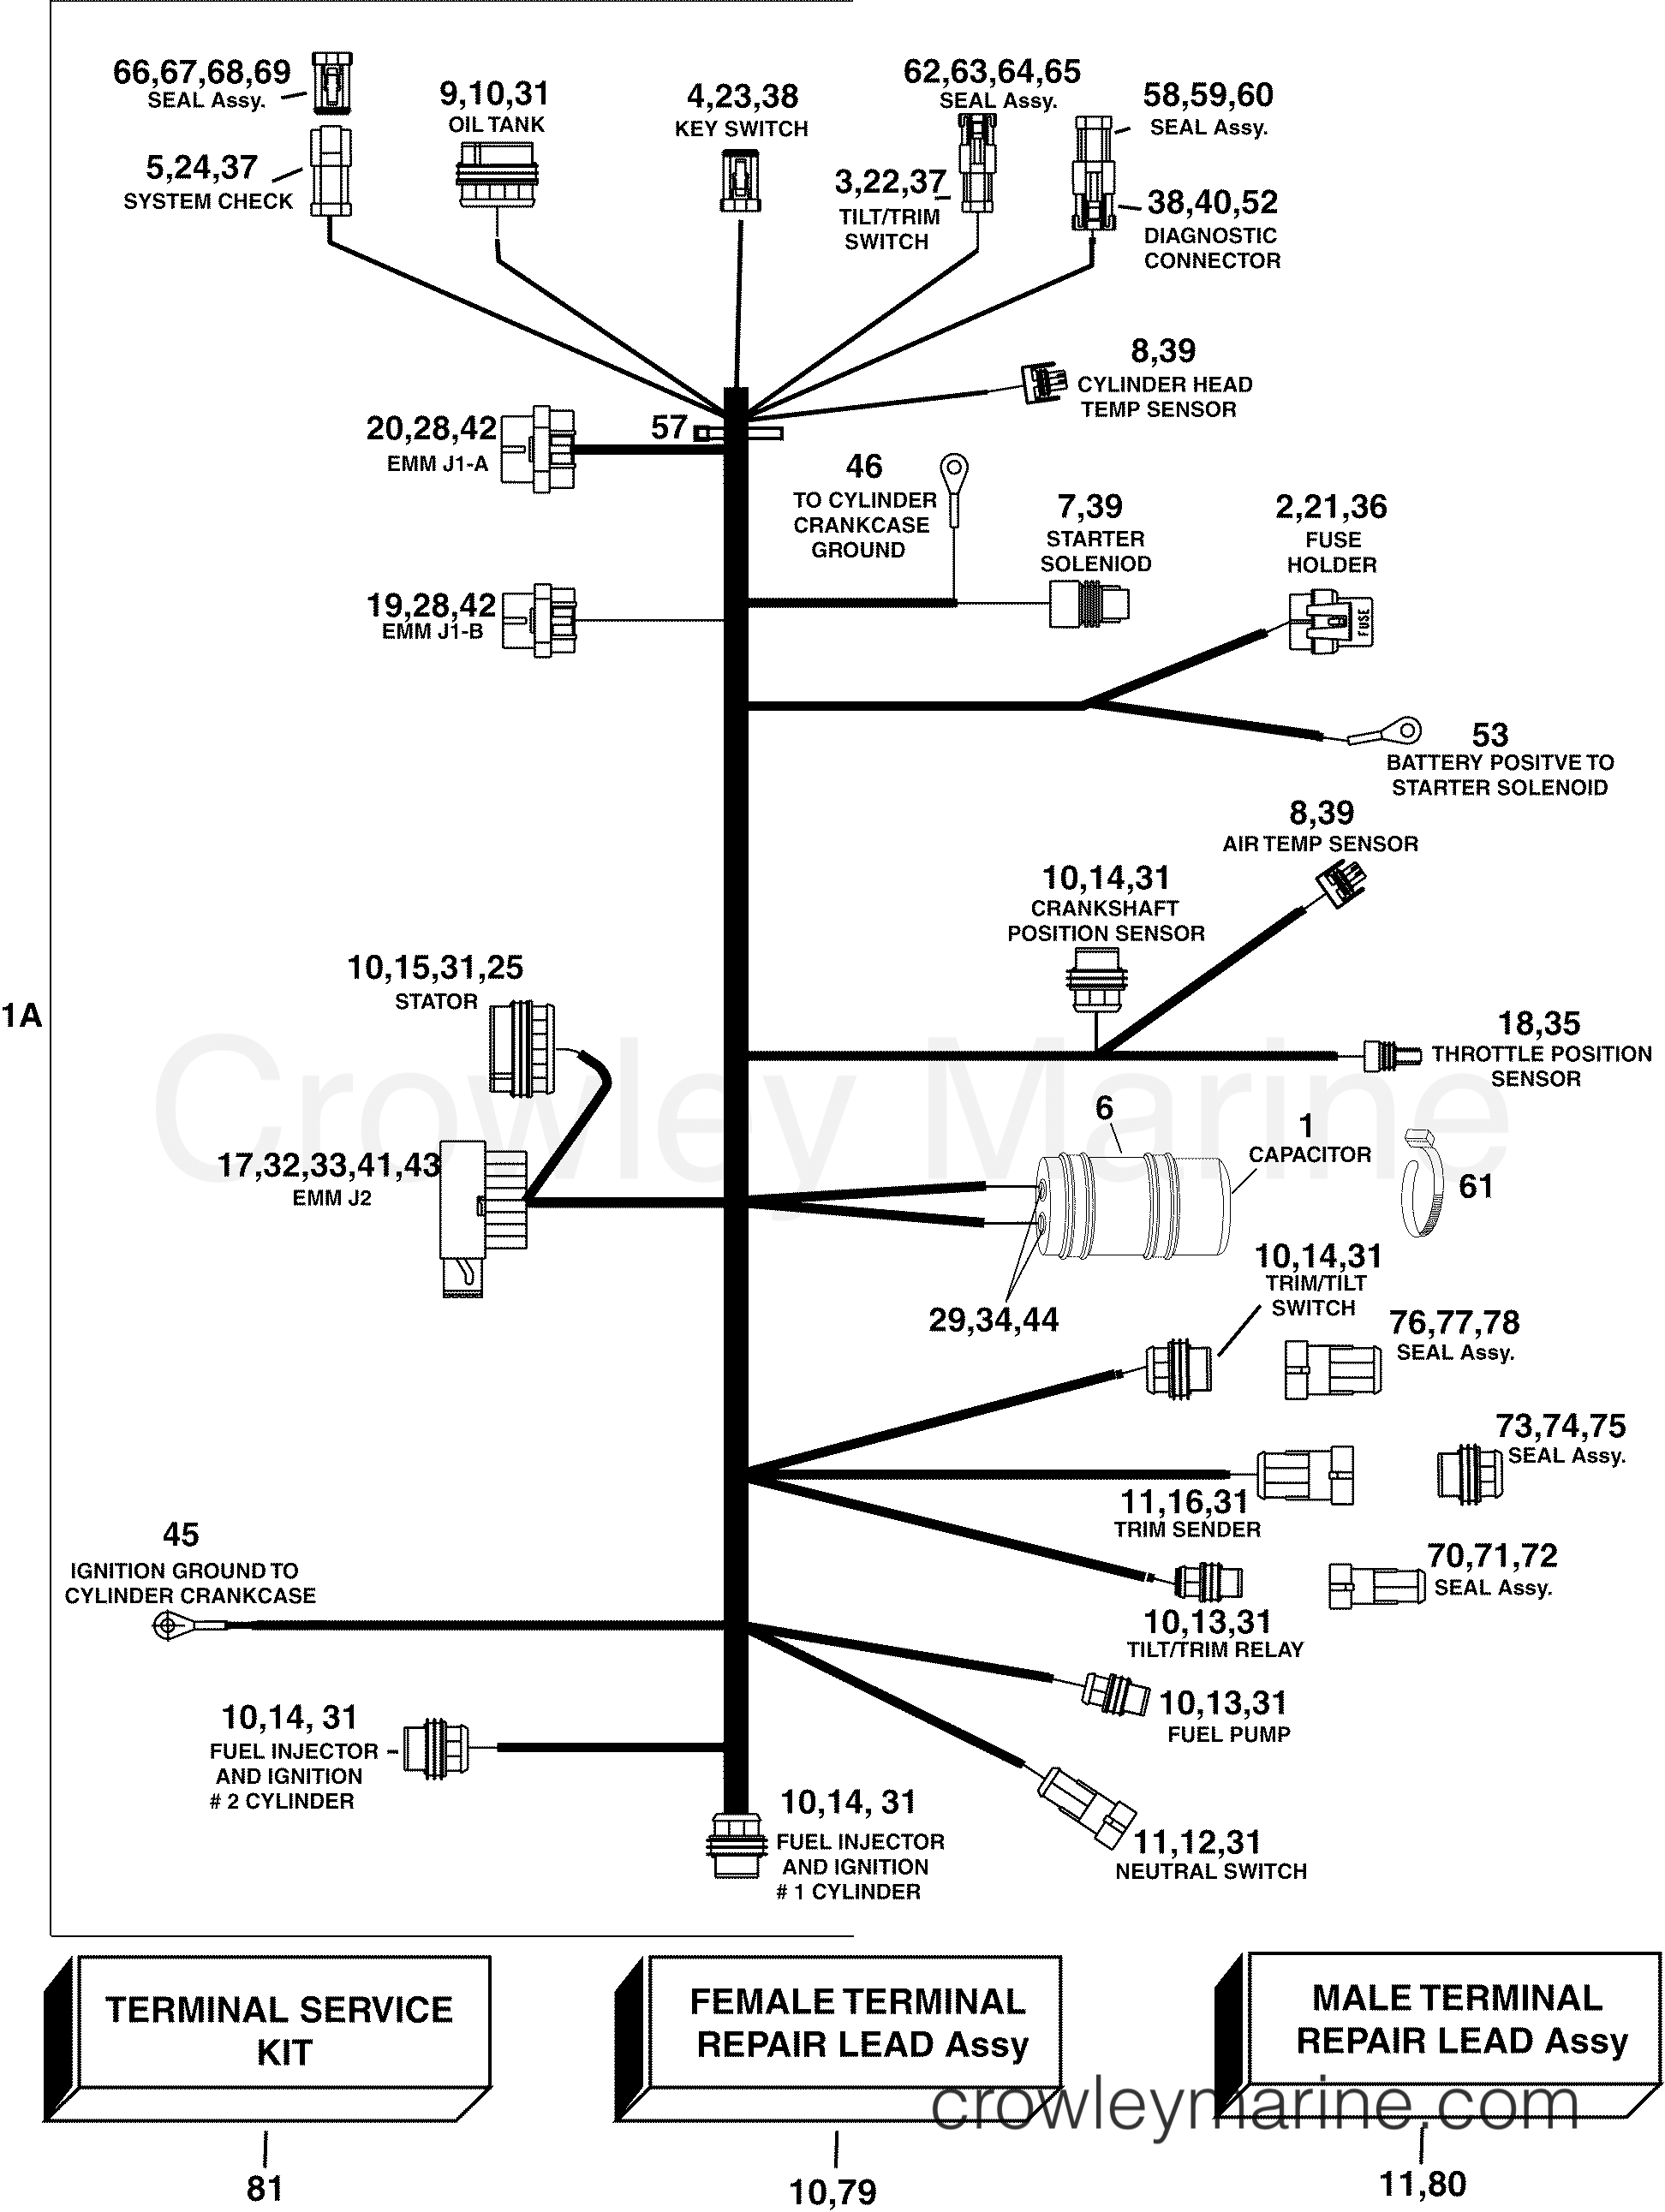 Engine Electrical Harness